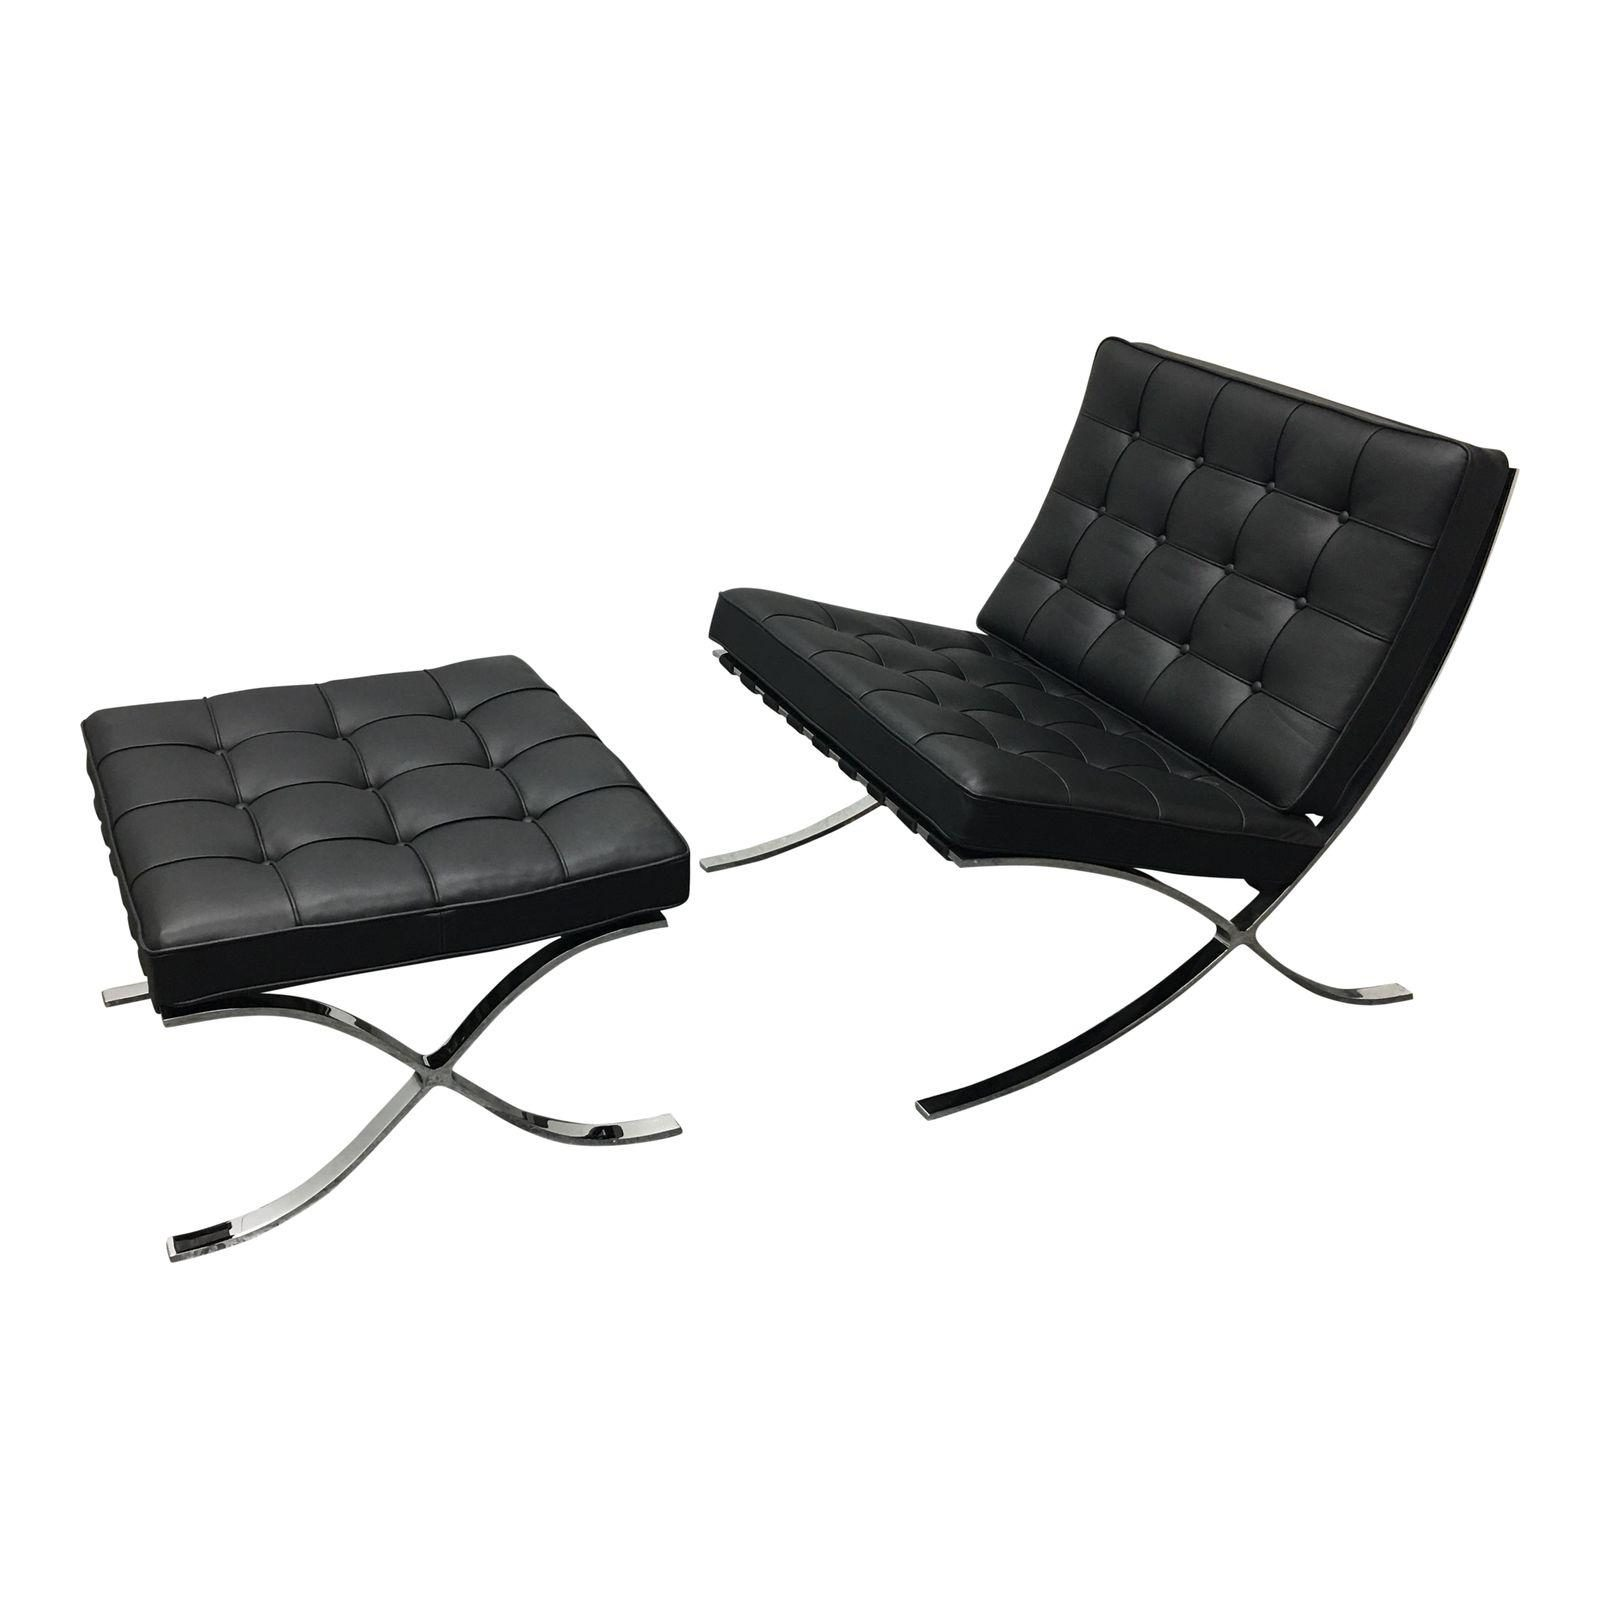 Brilliant Barcelona Chair With Ottoman Original Price 8 483 00 Caraccident5 Cool Chair Designs And Ideas Caraccident5Info